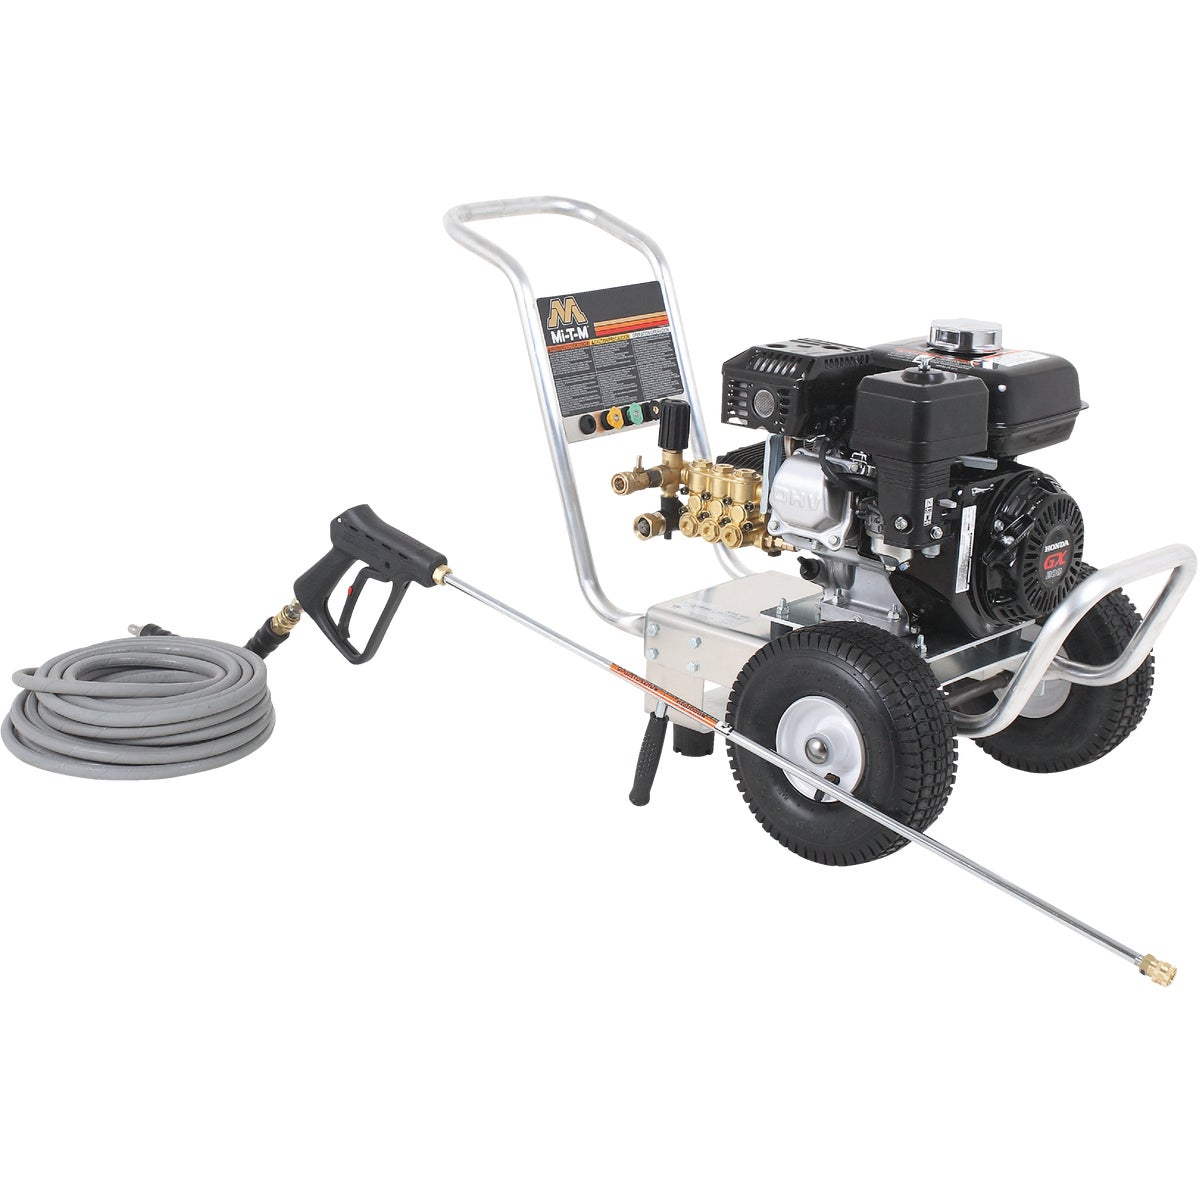 2700PSI PRESSURE WASHER - CA-2703-1MMH by Mi T M Corp